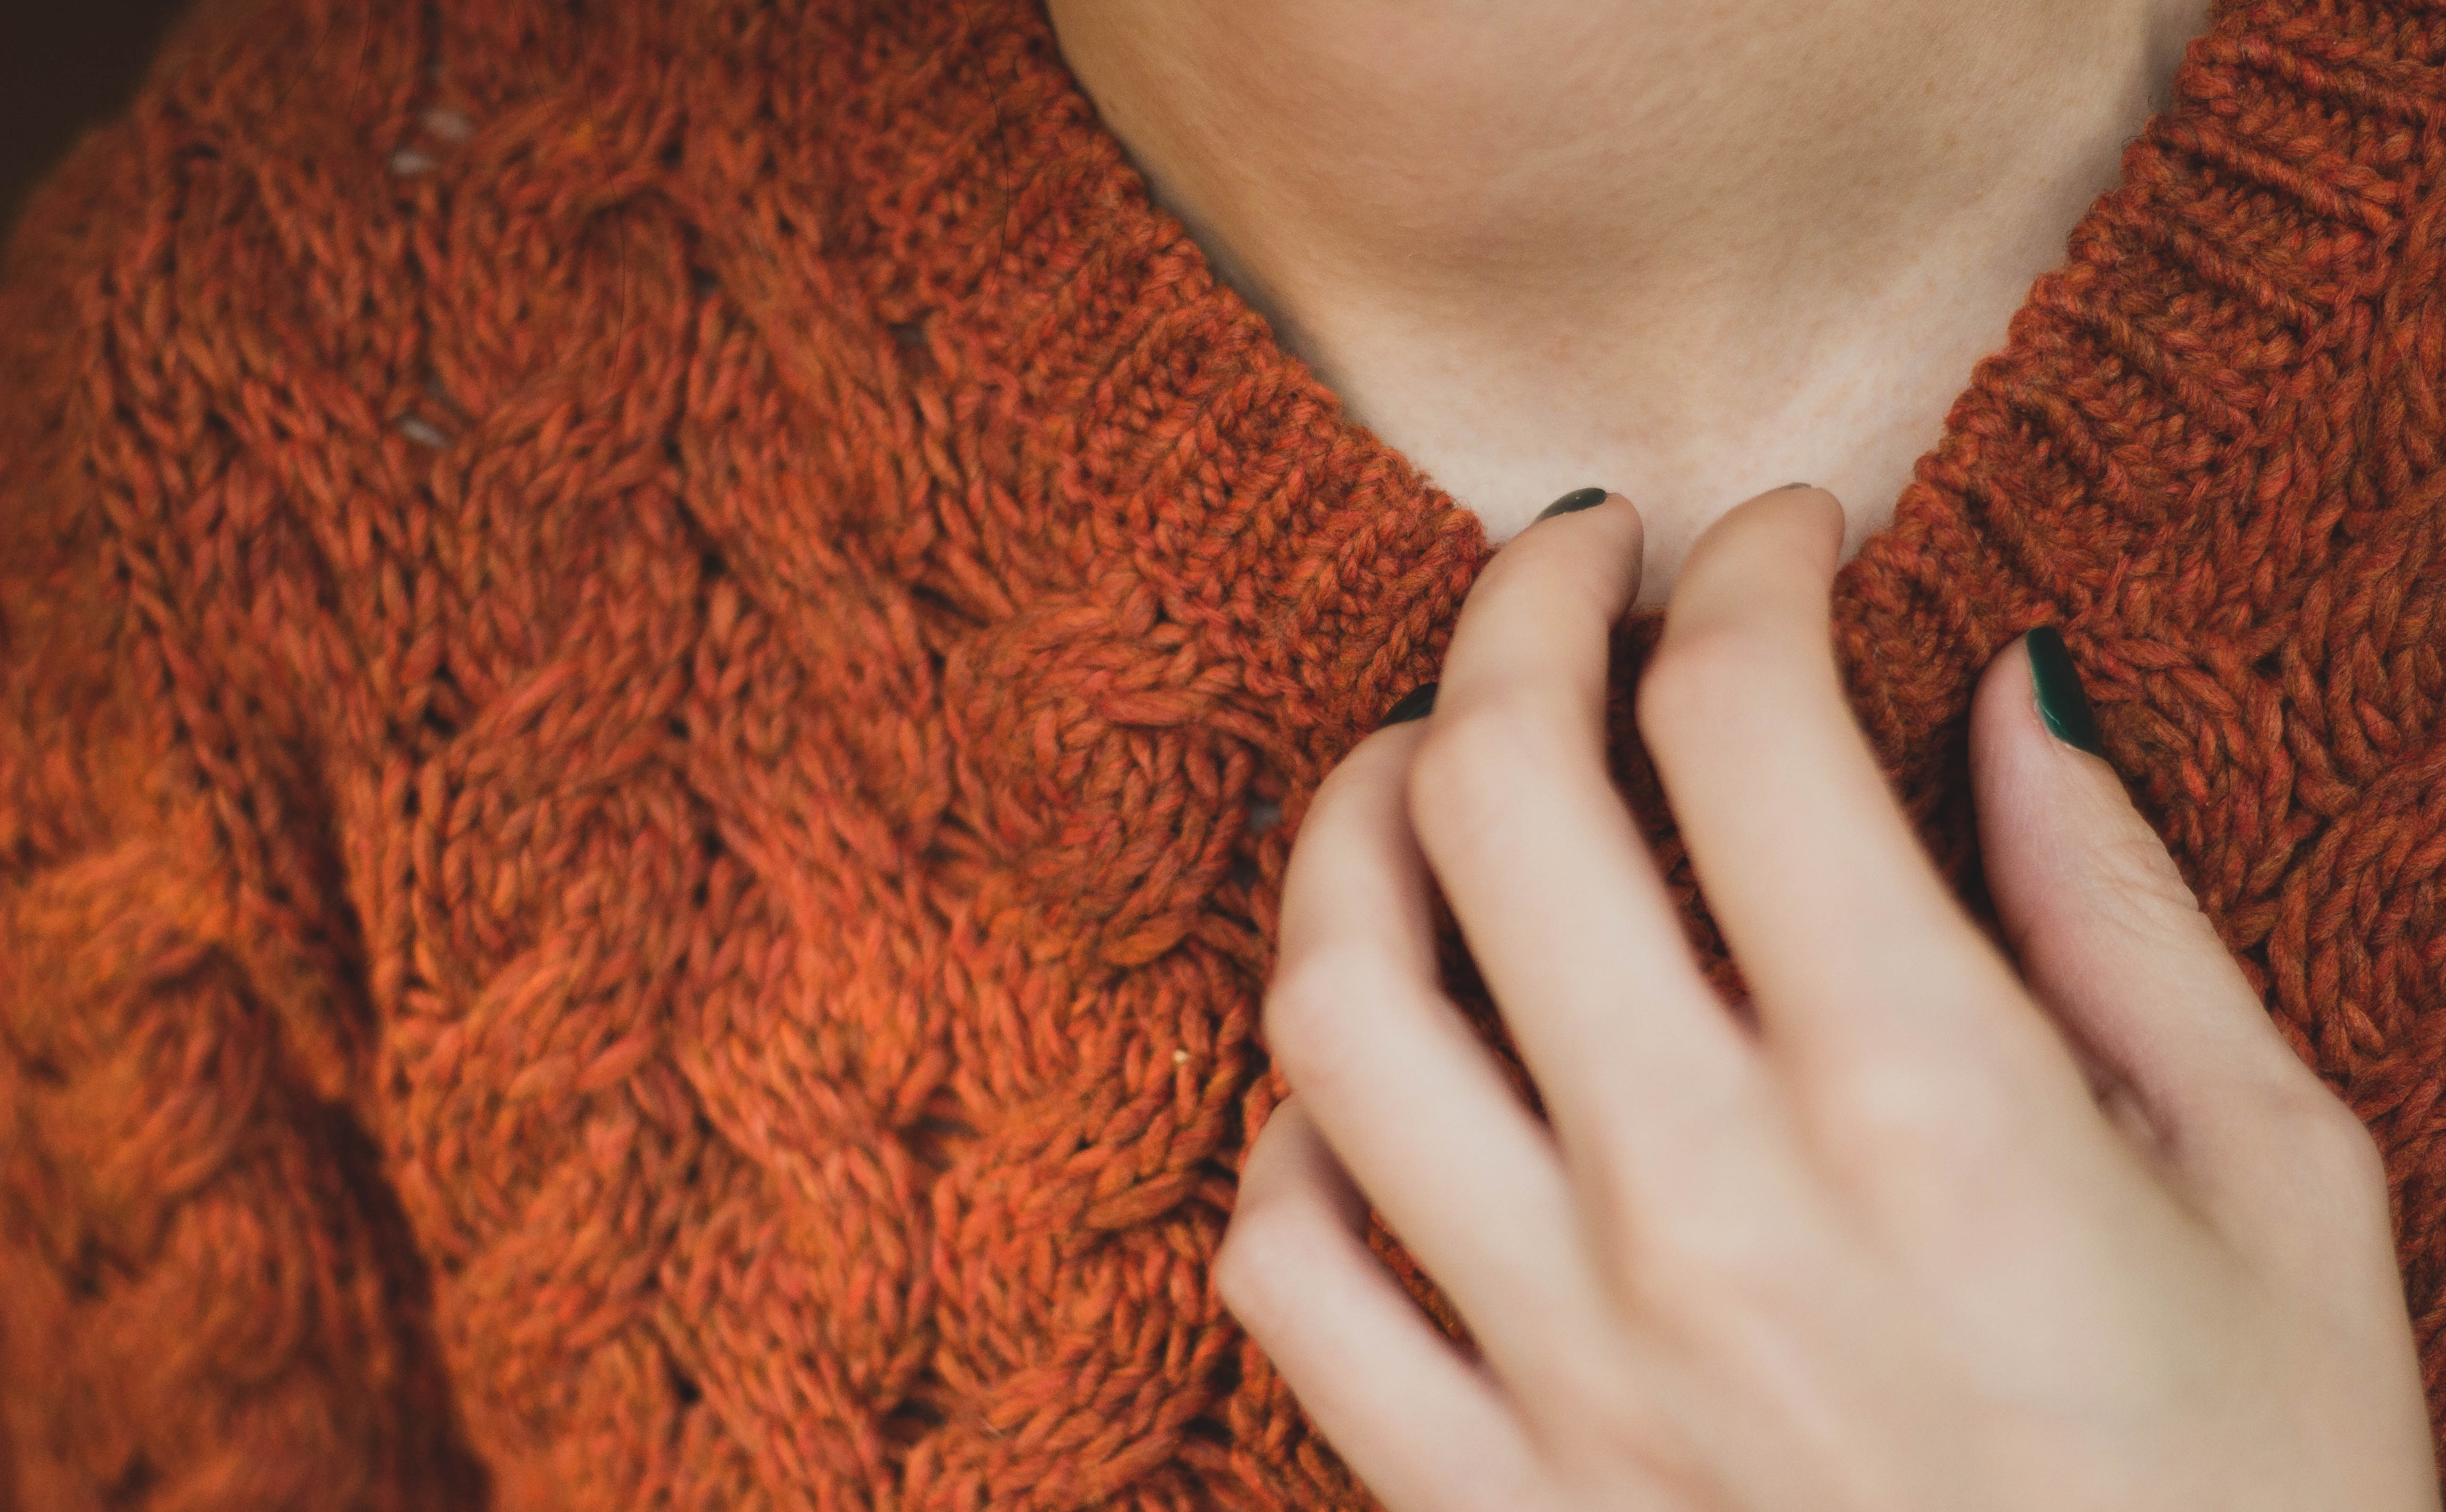 Clothes intertwined with nanotech will treat eczema